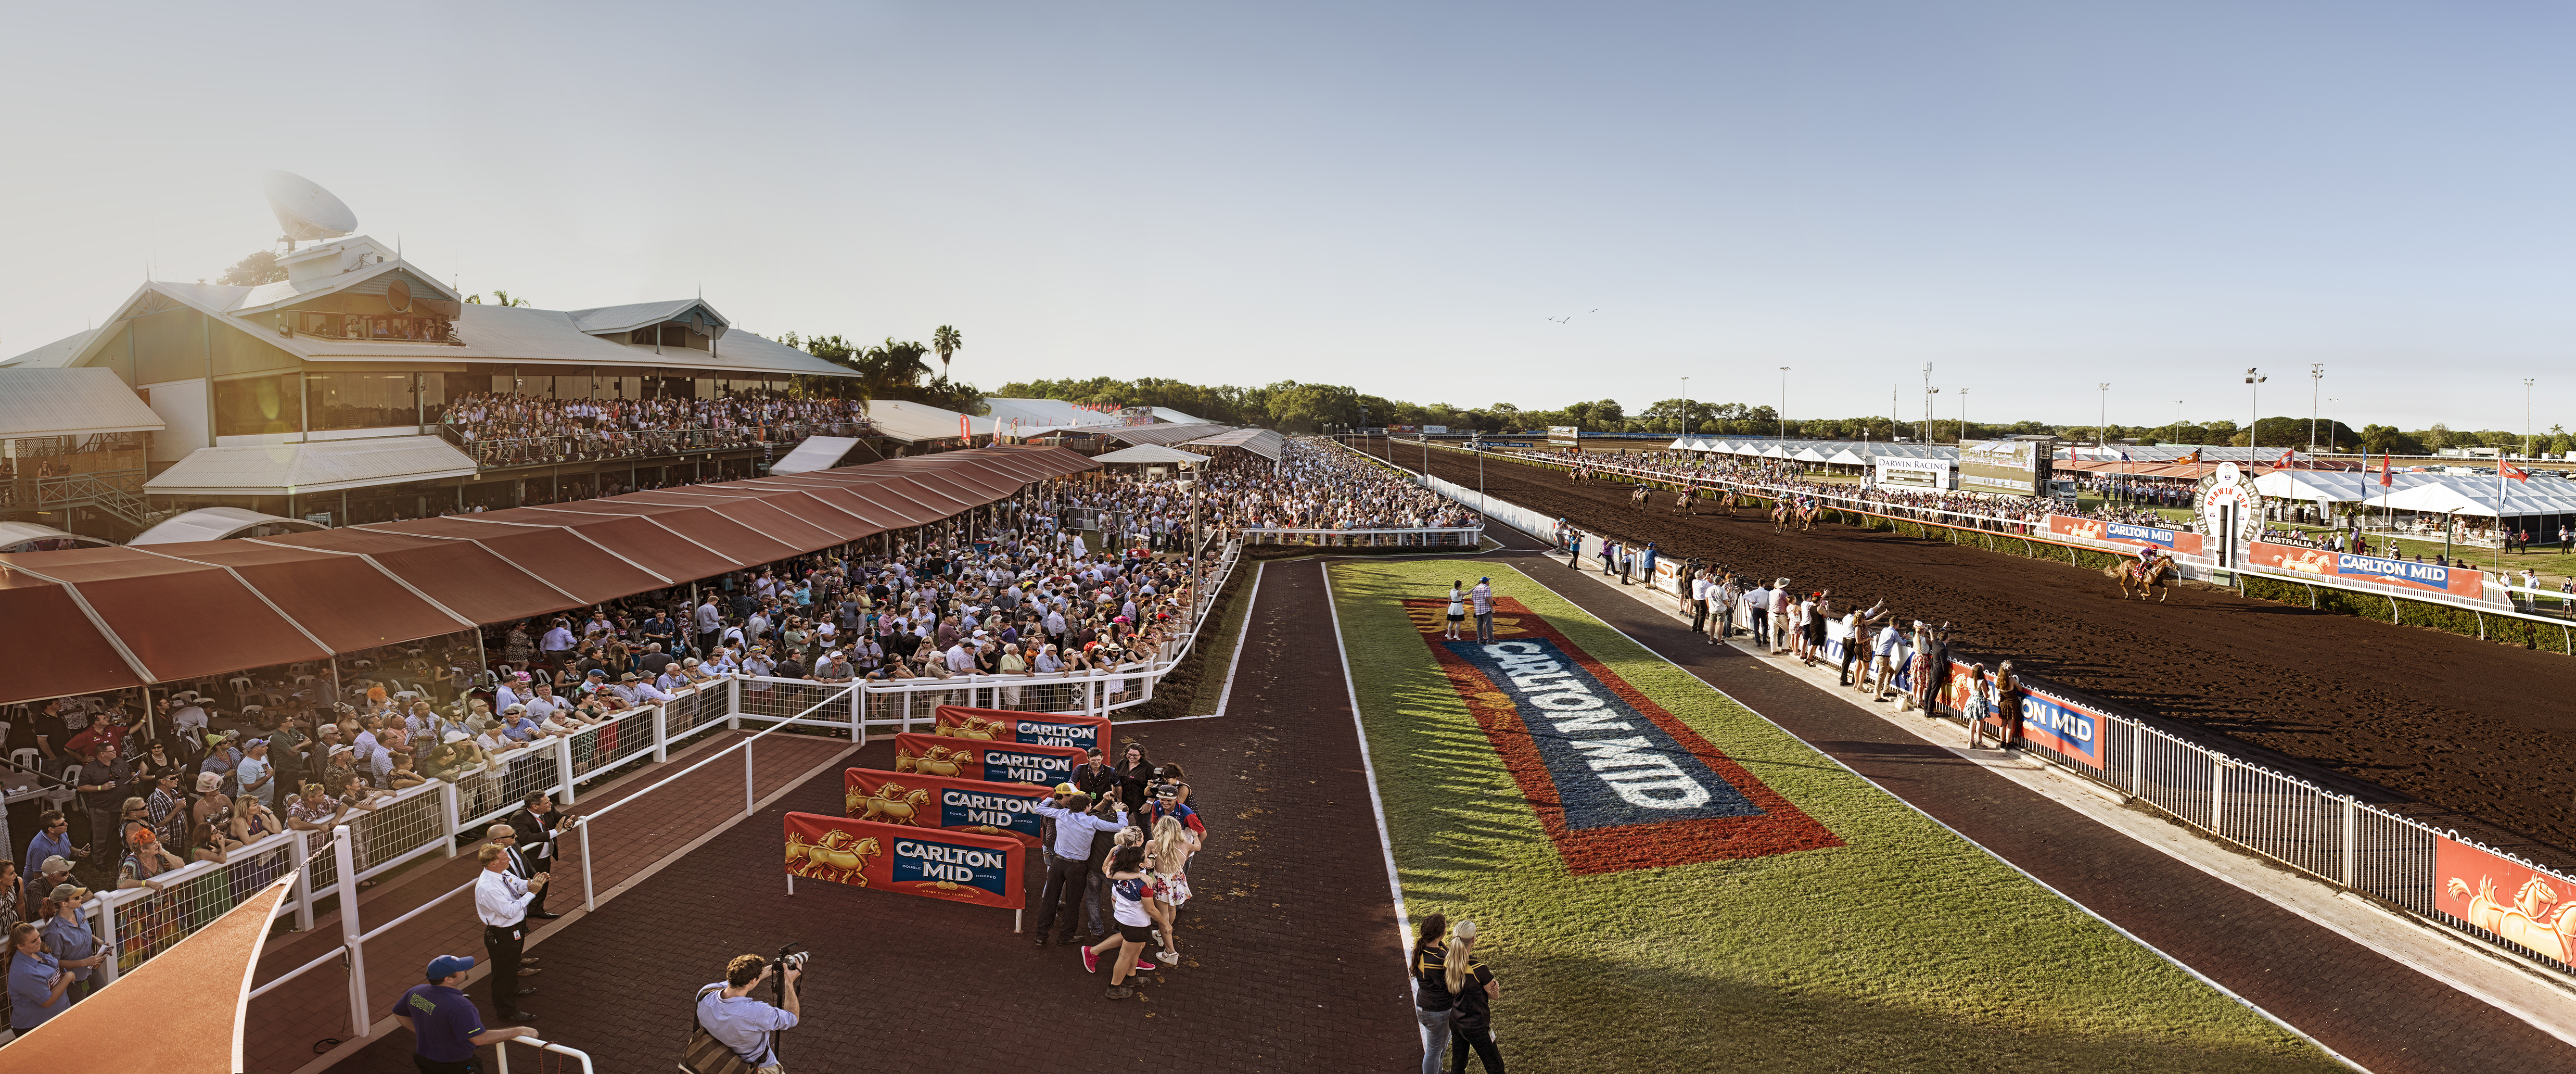 Dates for the 2017 darwin cup carnival mates 39 escapes for Pa fish for free days 2017